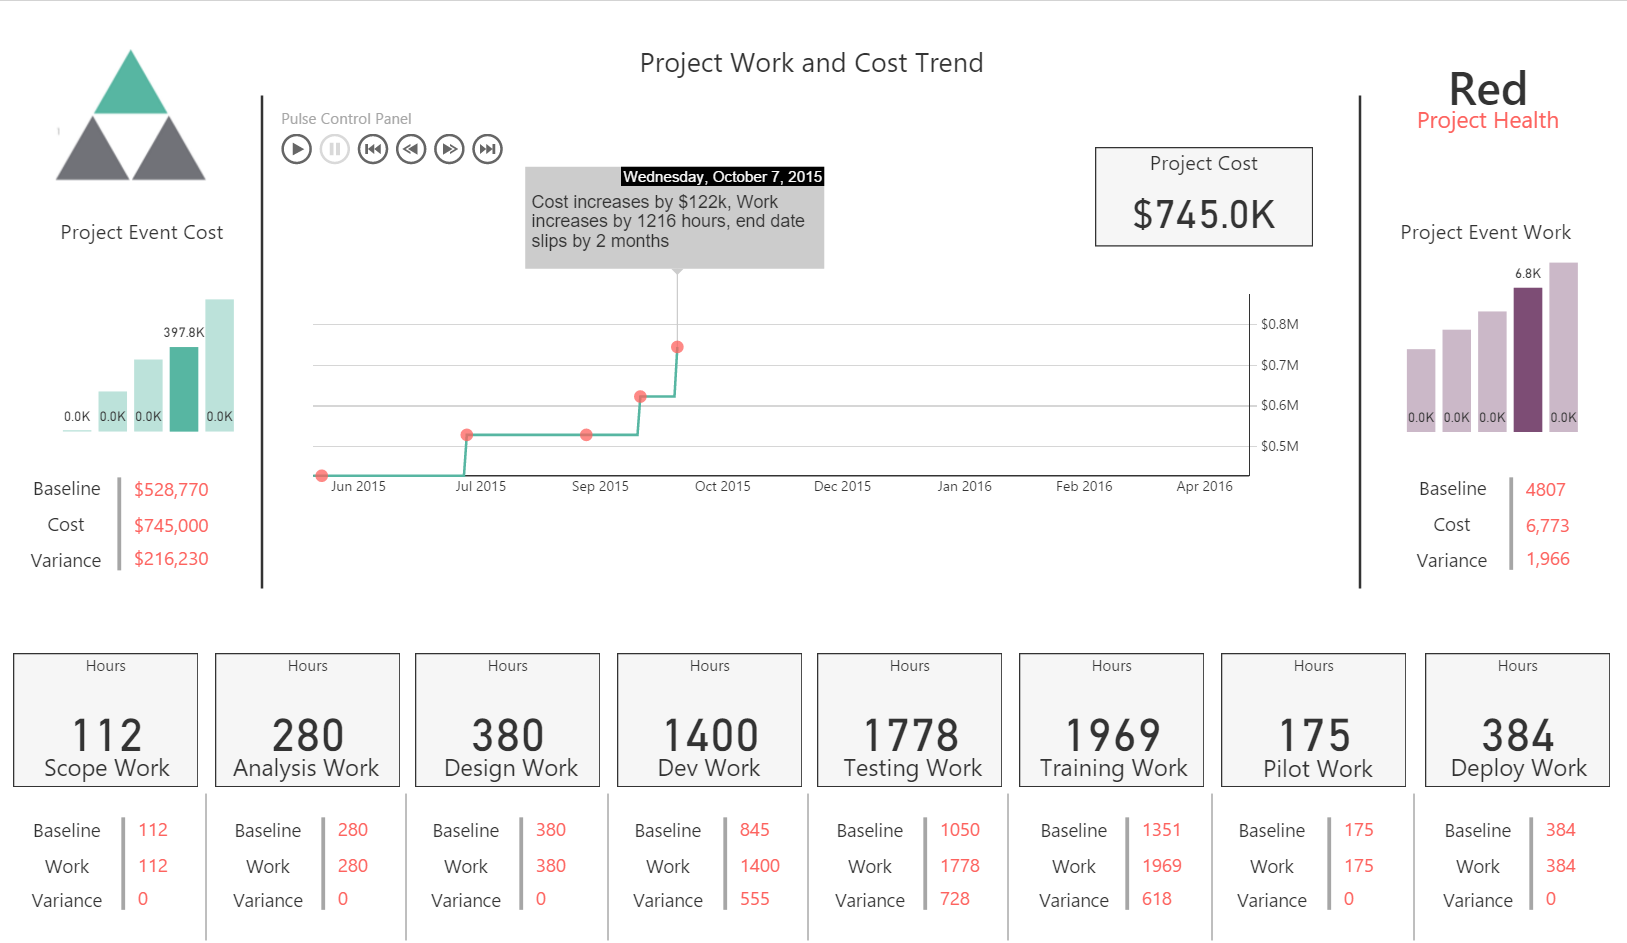 Project Work and Cost Trend